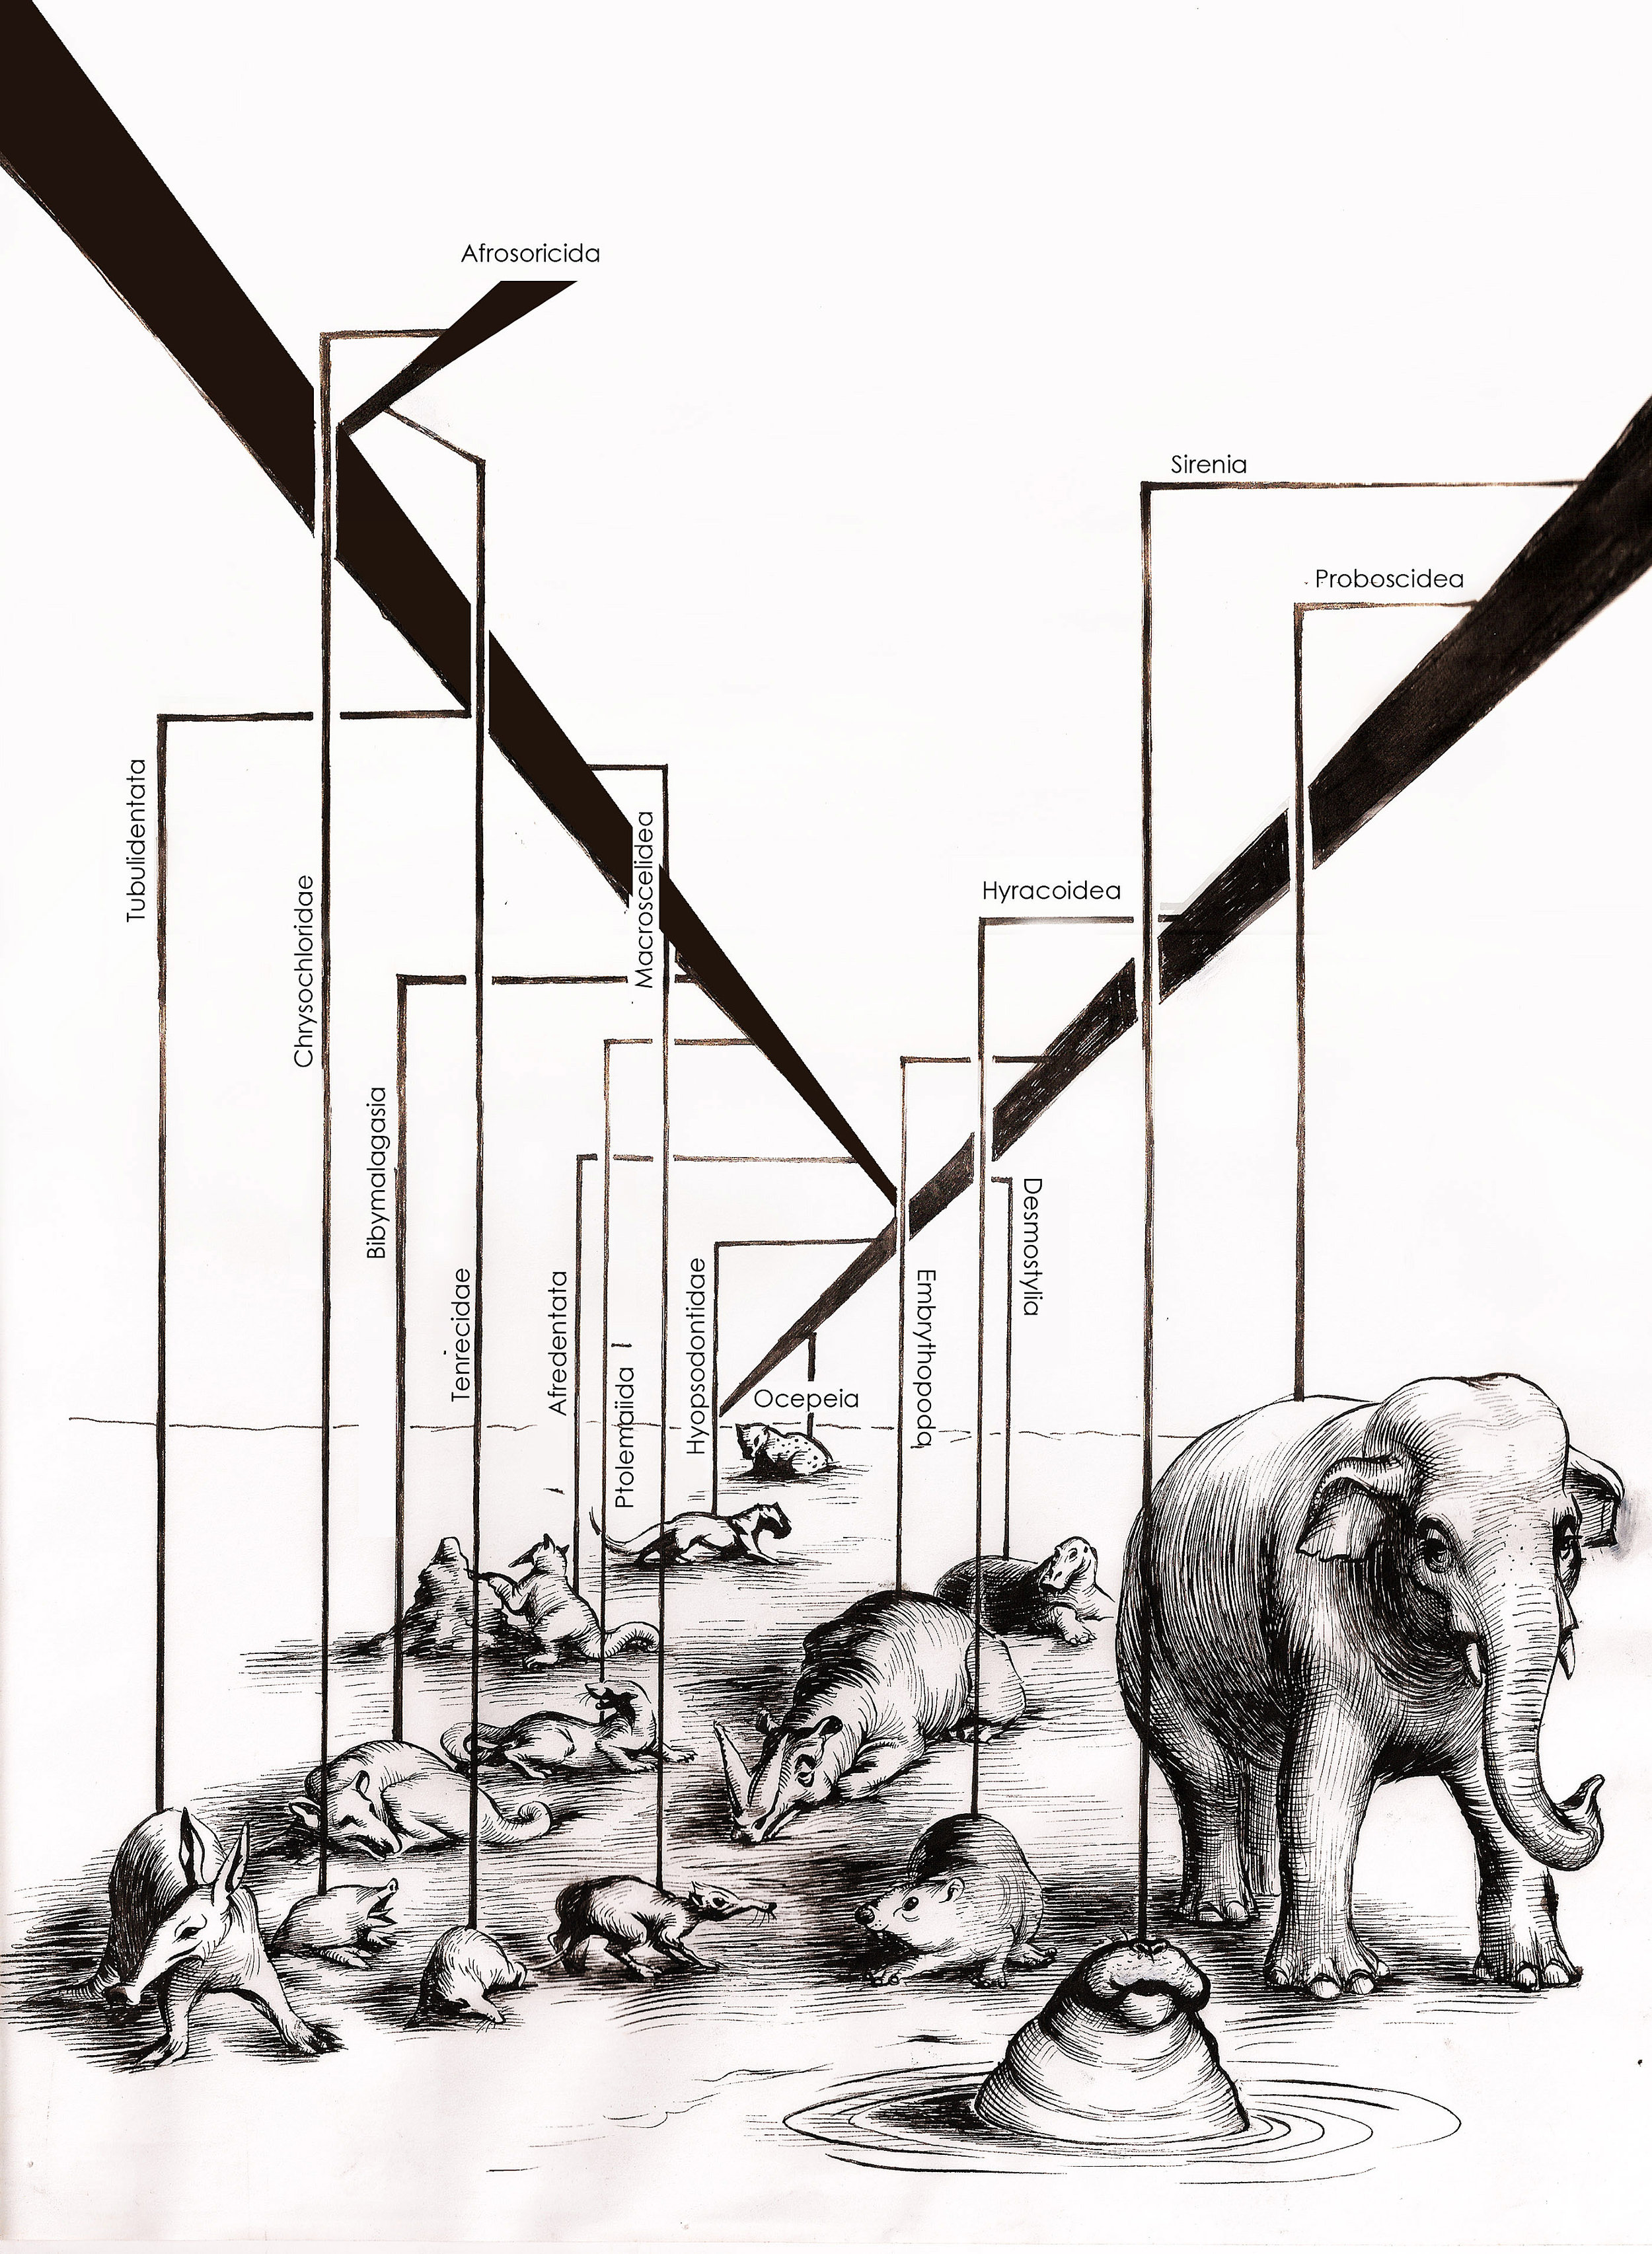 AFROTHERIA–India ink on paper. A visual representation of various mammalian orders that originated in Africa.